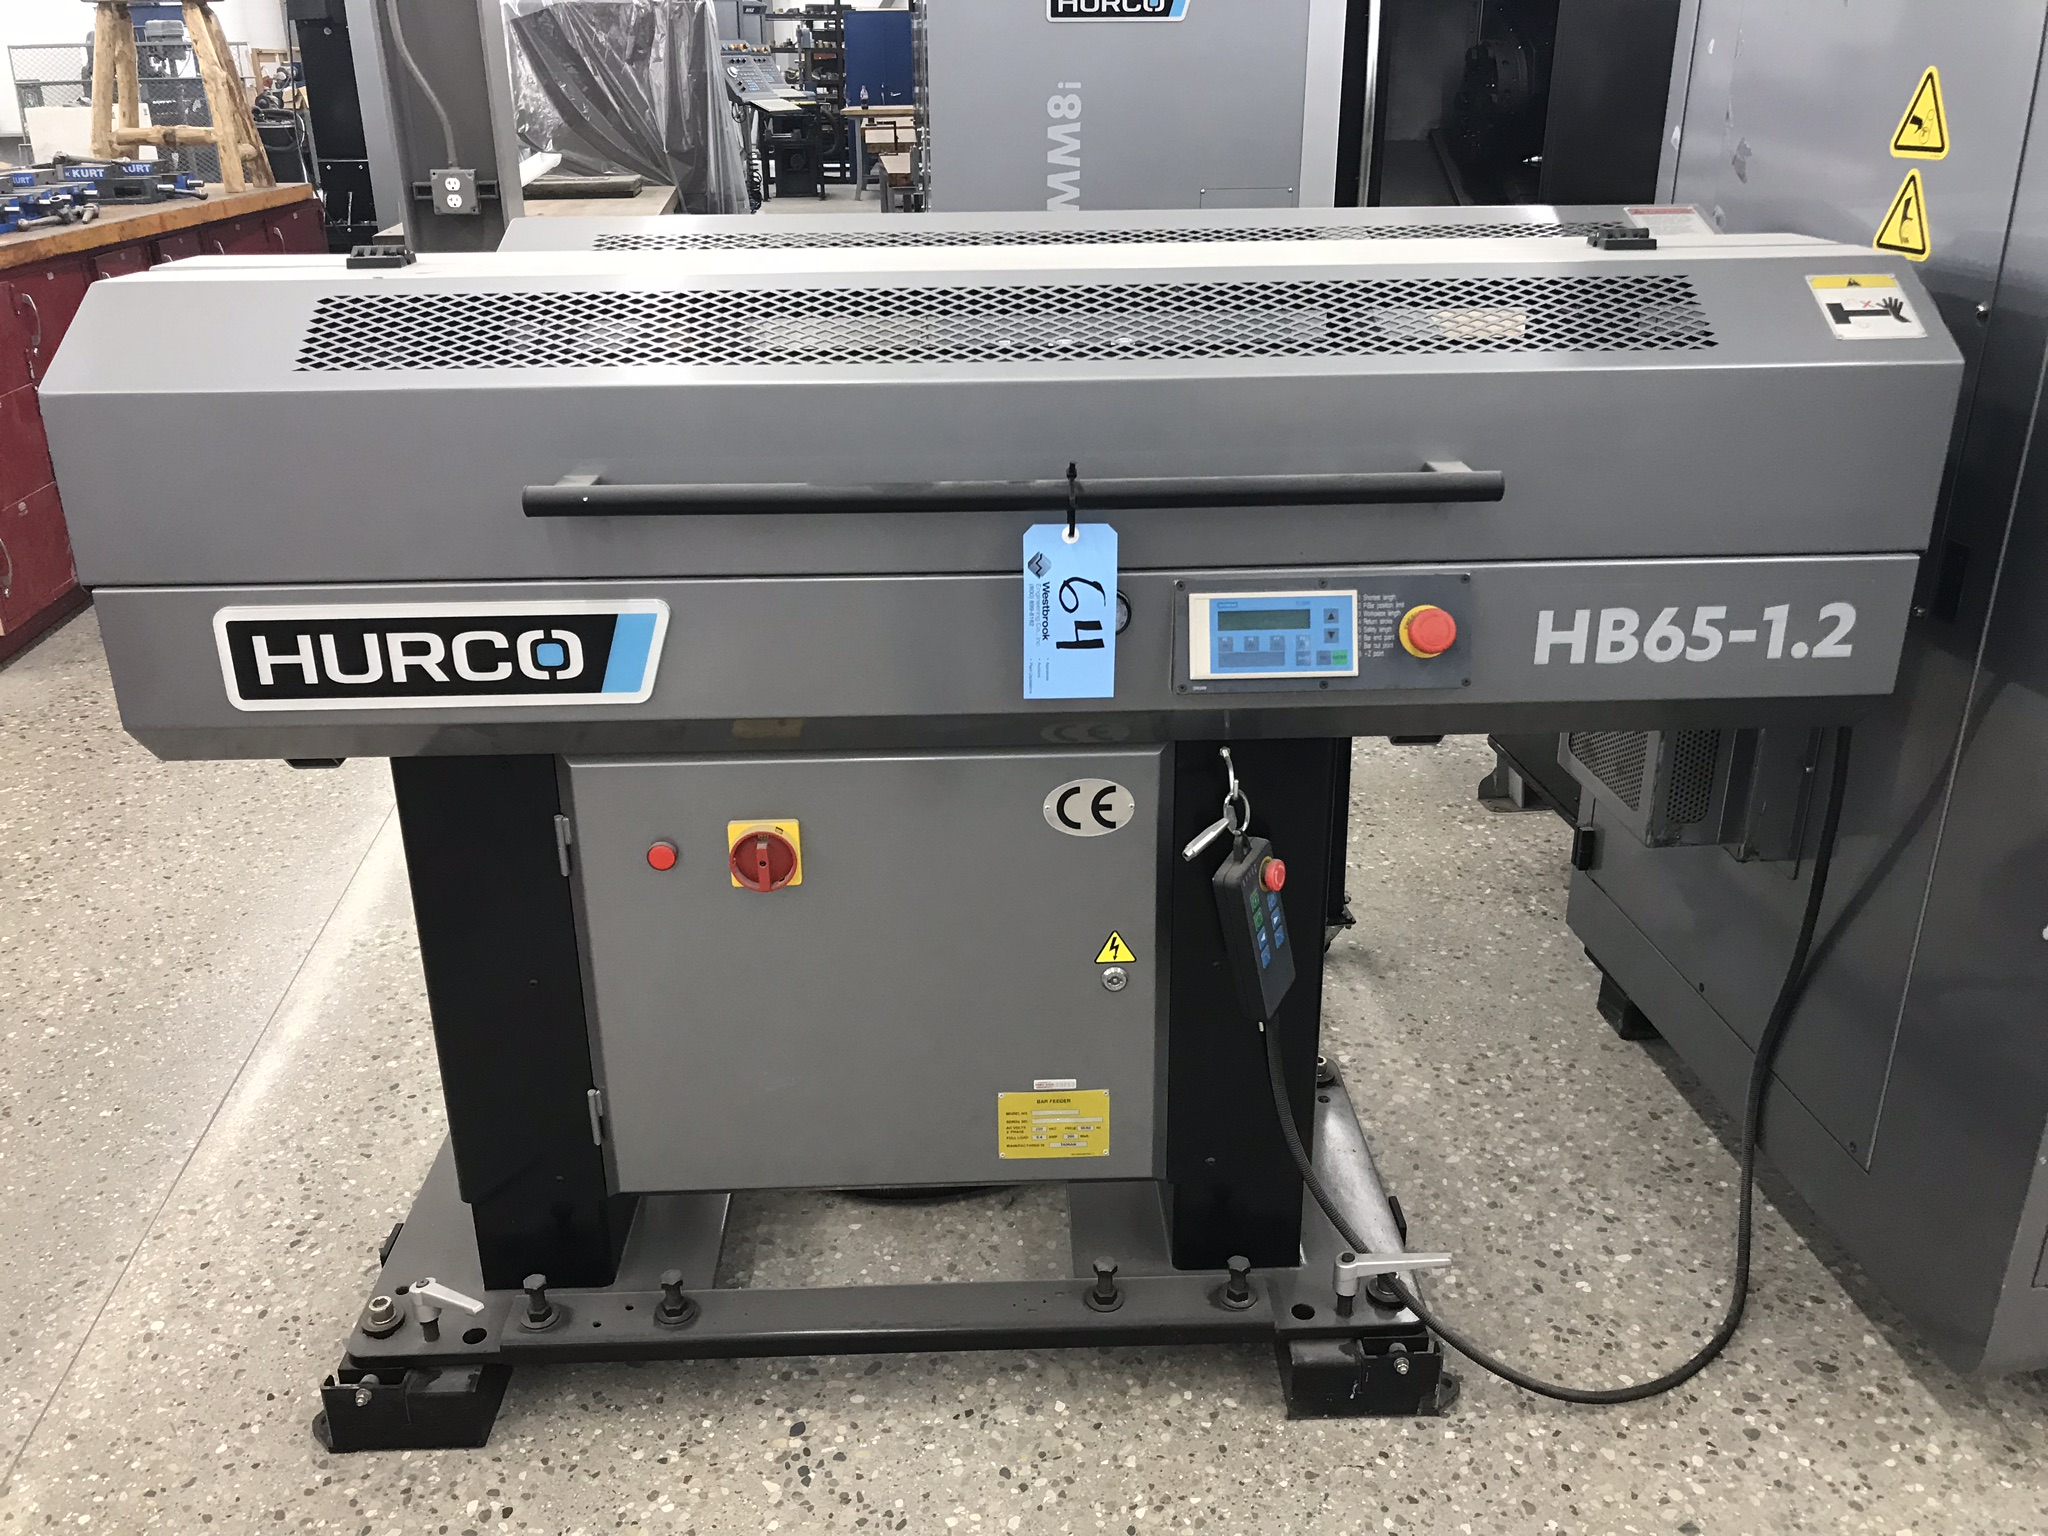 Hurco TM-6i CNC Lathe with HB65-1.2 Barfeed, Rigid Tap, Renishaw Presetter, Chip Conv, 400 Hours! - Image 11 of 16